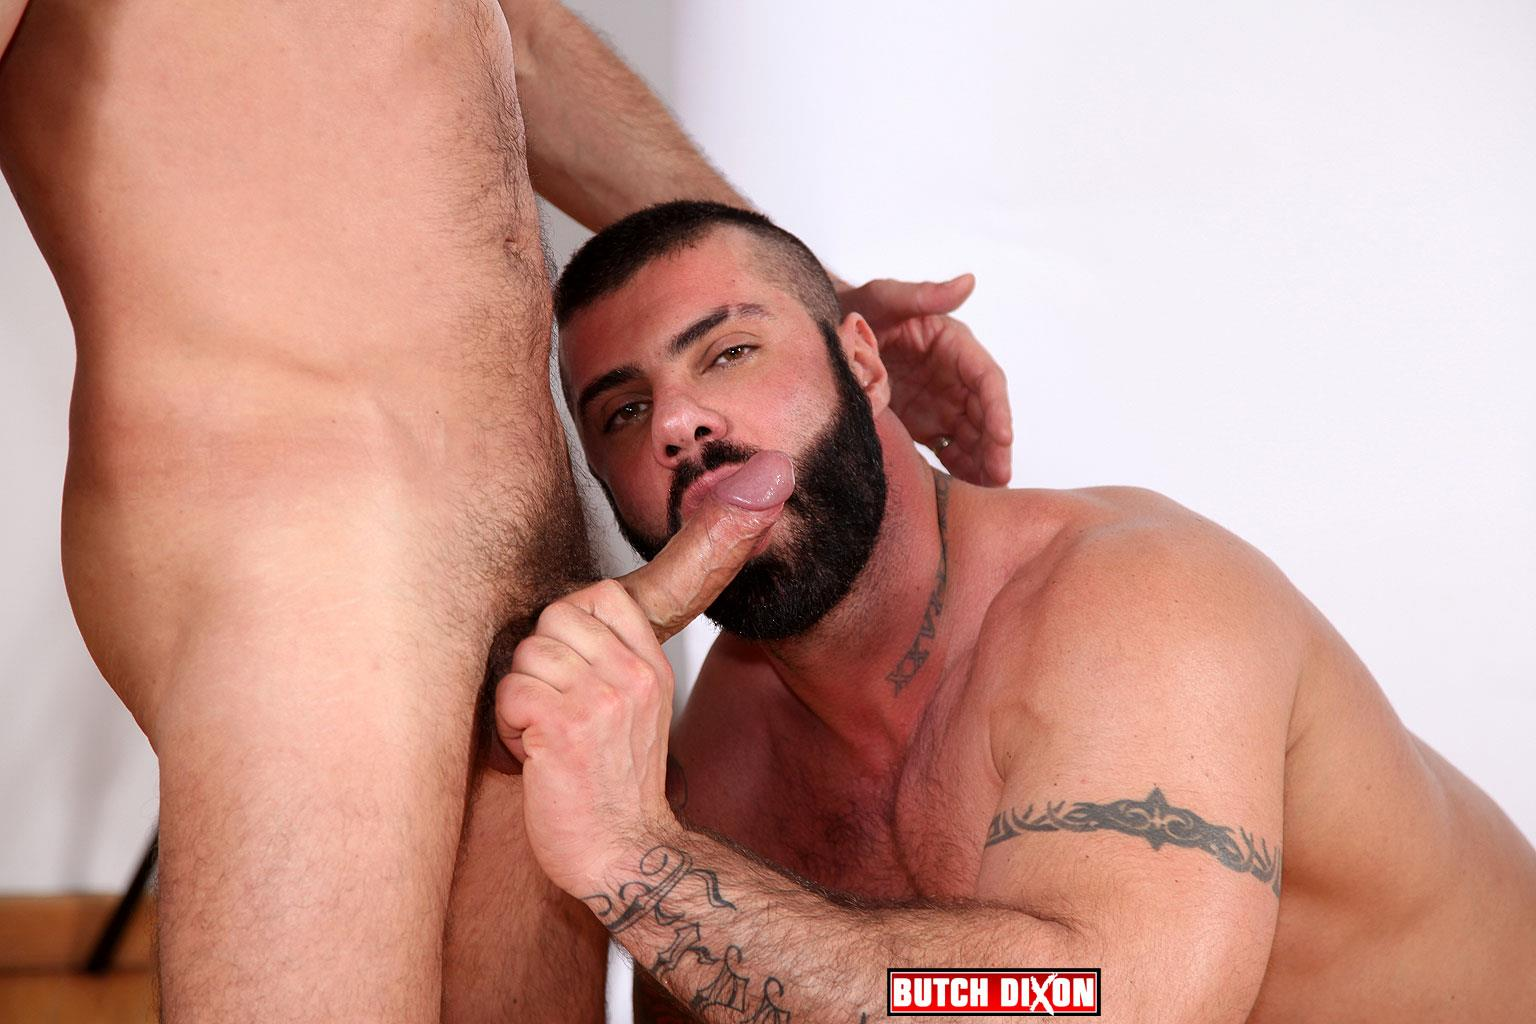 Butch-Dixon-Alex-Marte-and-Antonio-Garcia-Beefy-Hunks-With-Big-Uncut-Cocks-Fucking-Amateur-Gay-Porn-20 Beefy Burly Muscle Guys With Thick Uncut Cocks Fucking Hard